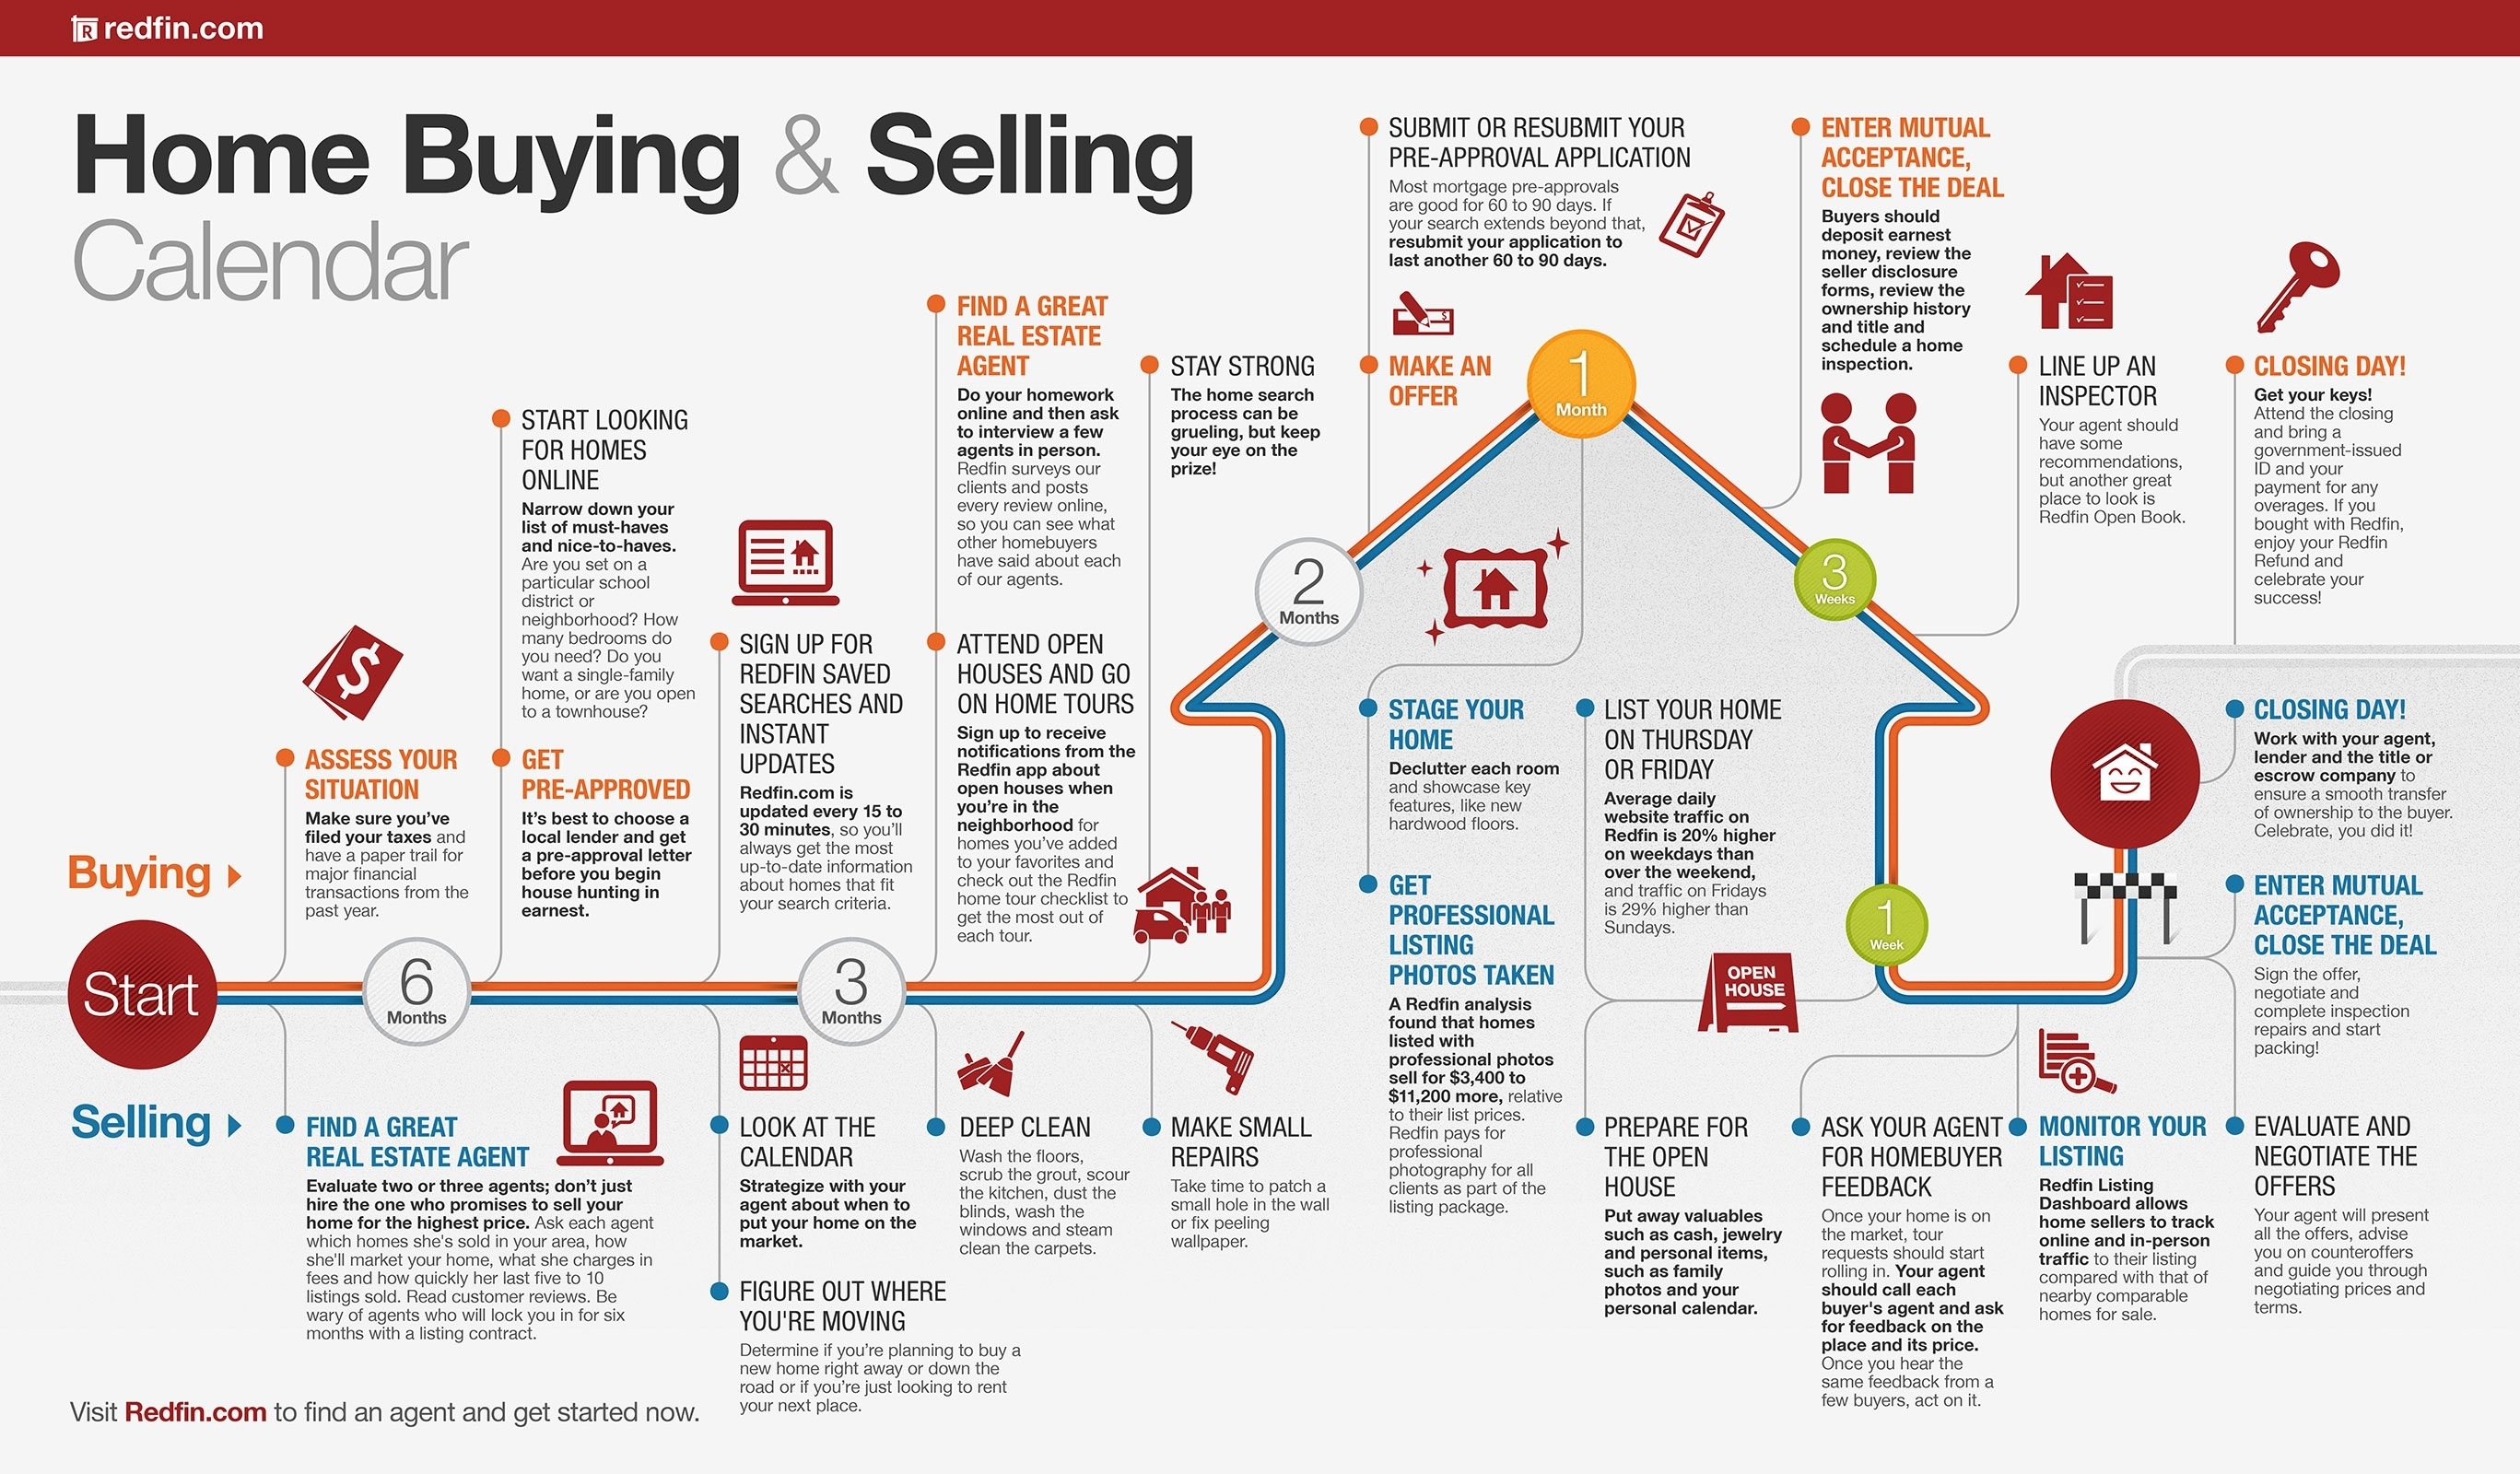 Home Buying And Selling Calendar | Visual.ly